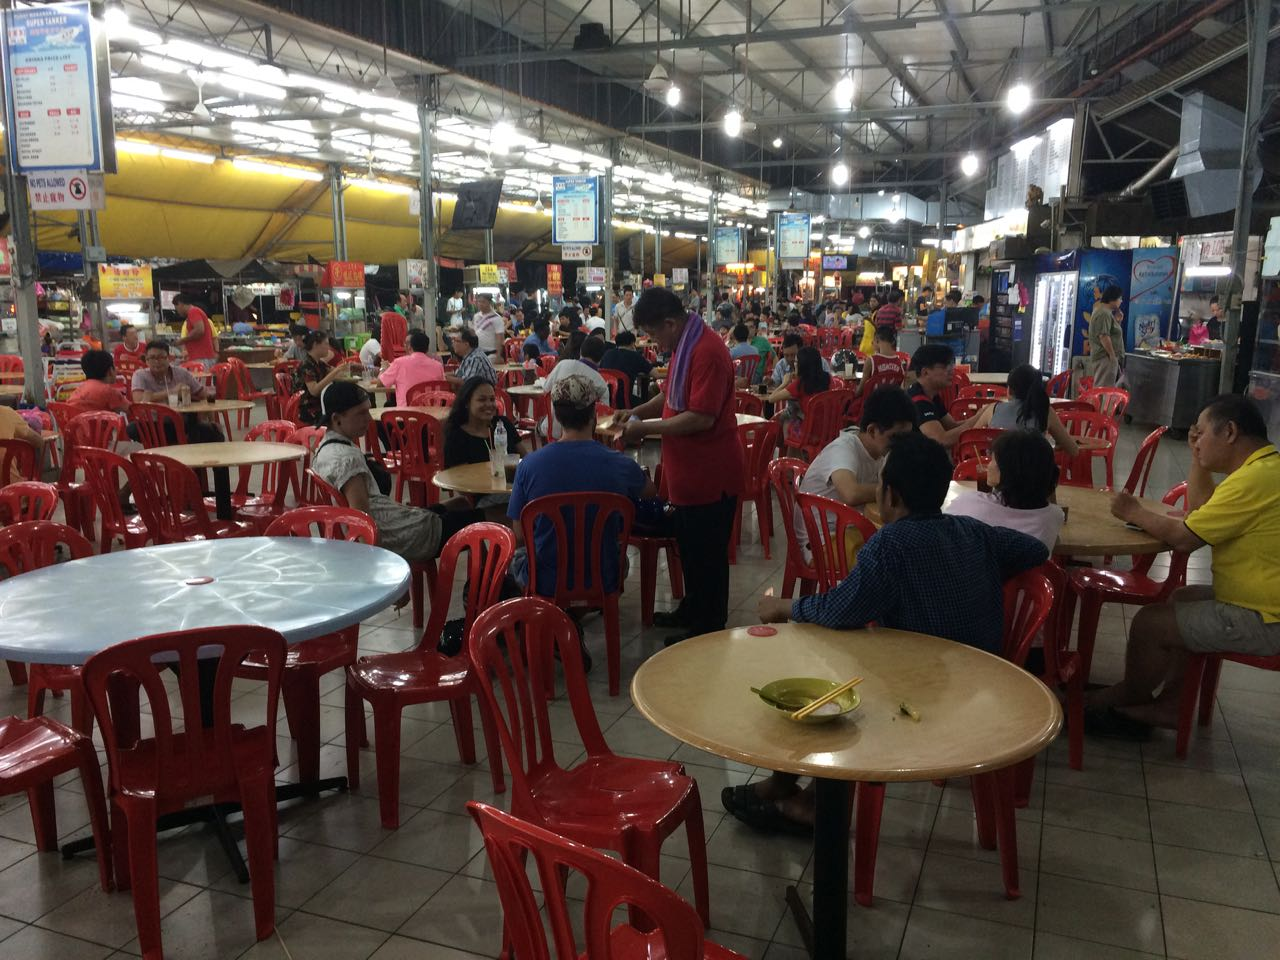 Busy, chaotic, delicious food at Supertanker